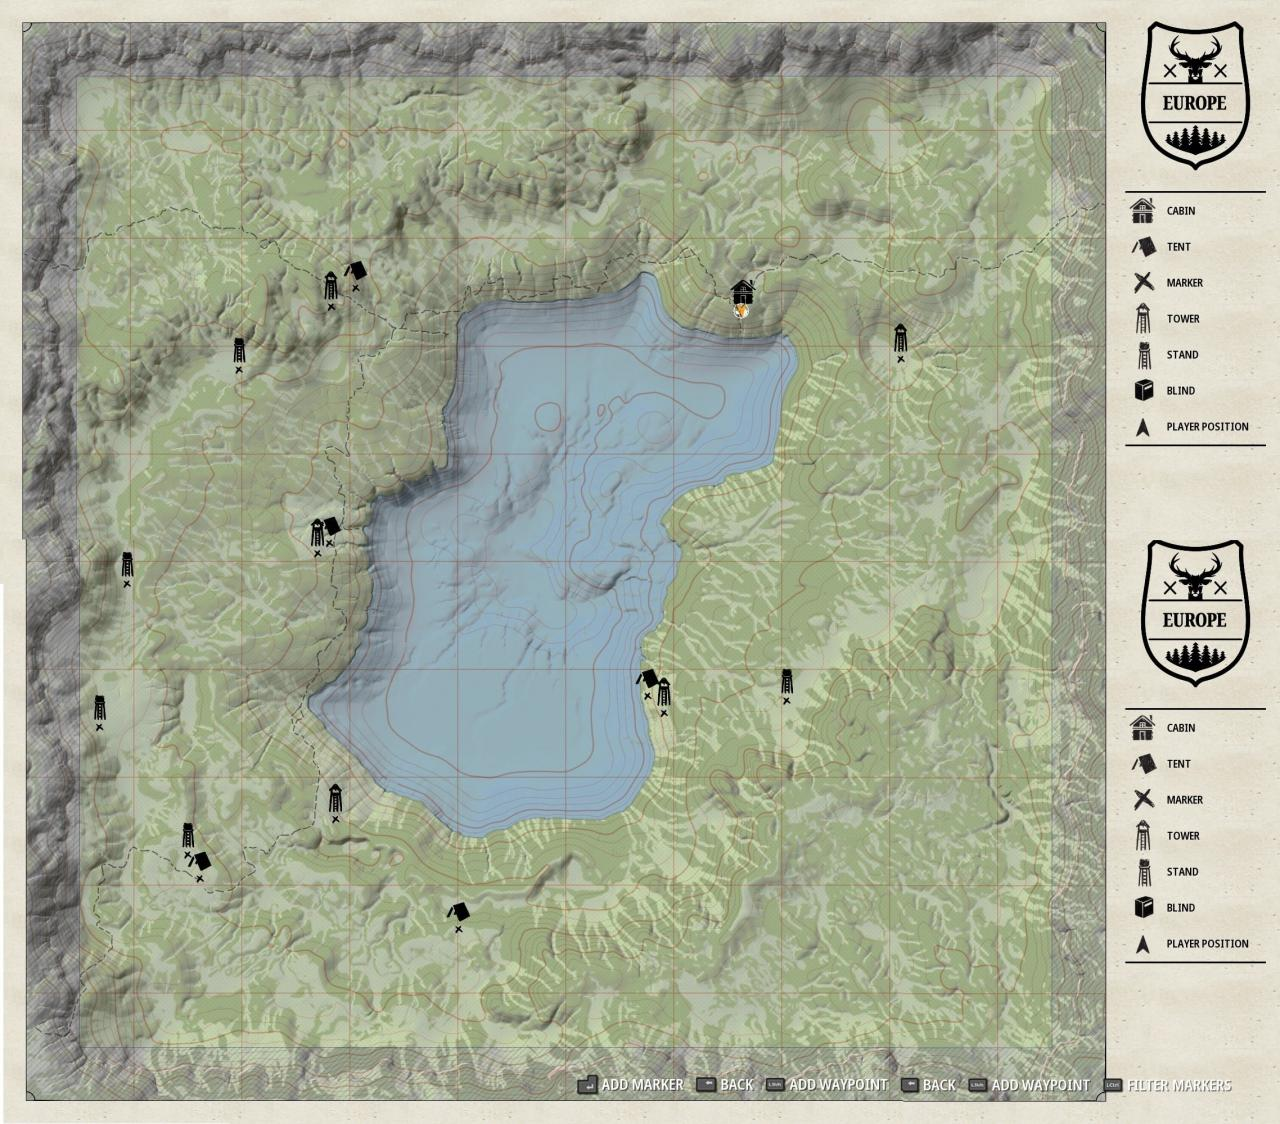 Hunting Simulator 2 Points of Interest Guide (Colorado, Texas, Europe)